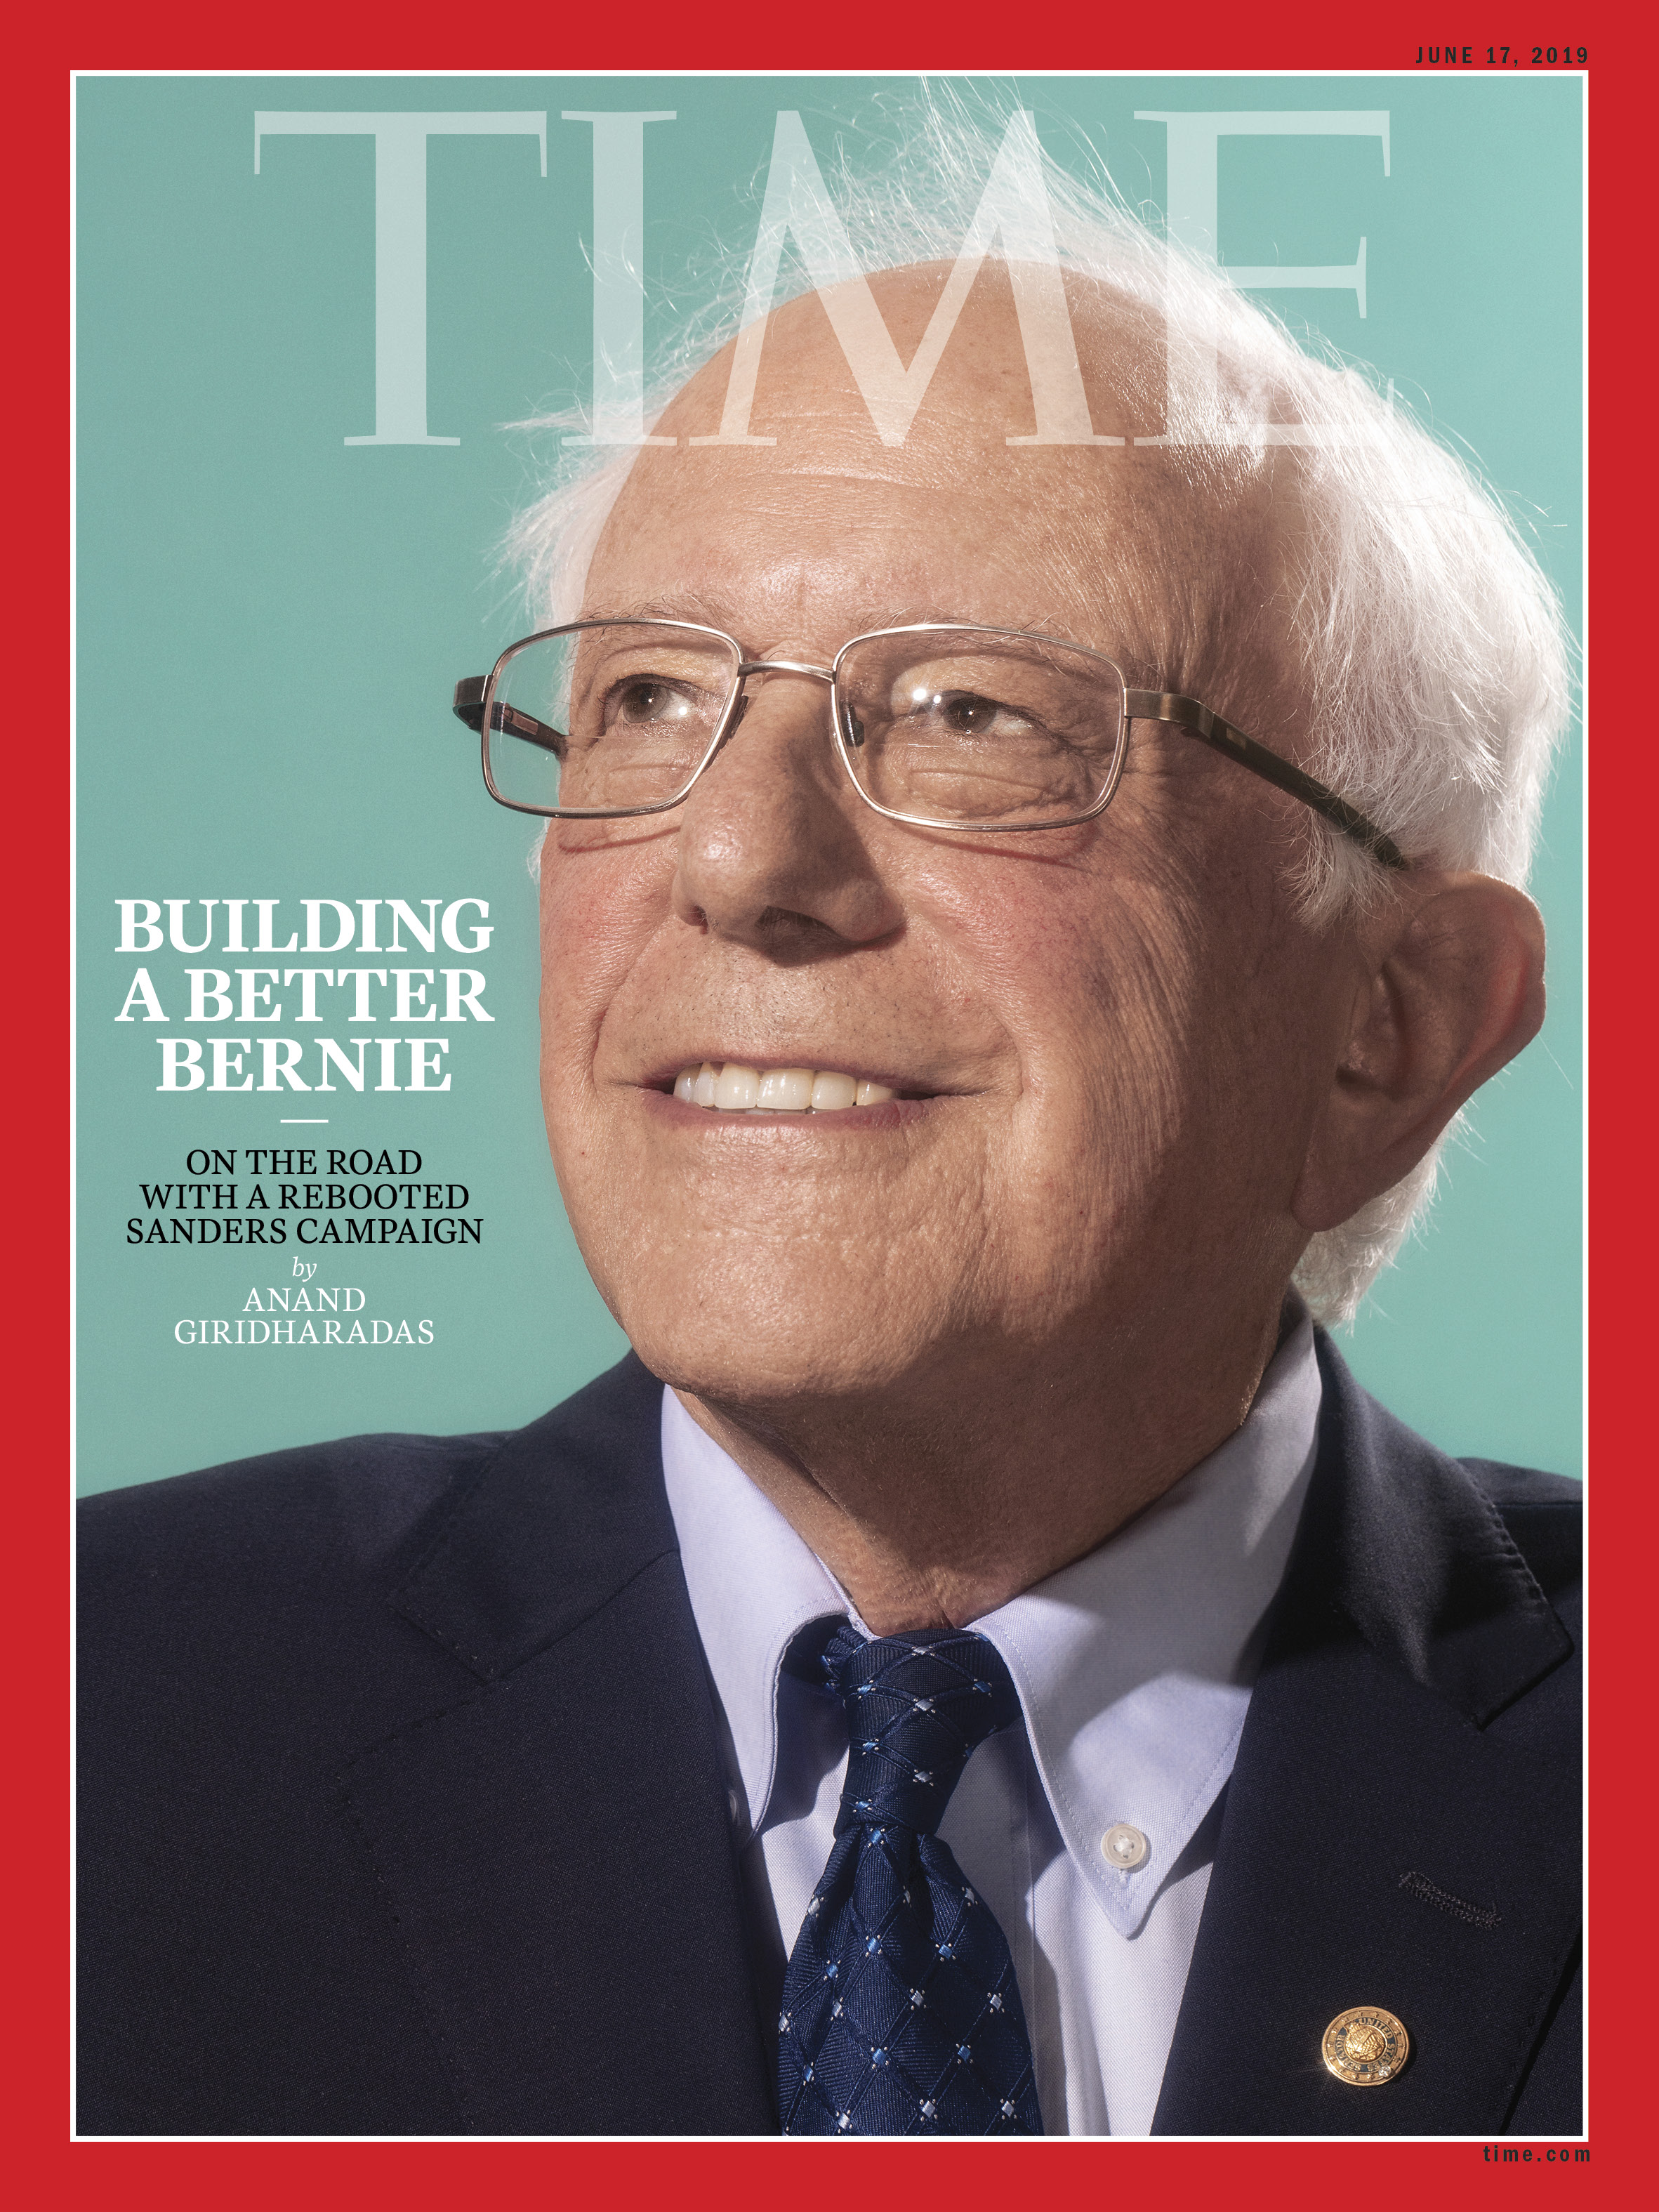 Bernie Sanders Needs To Change Himself First Before The U S Time